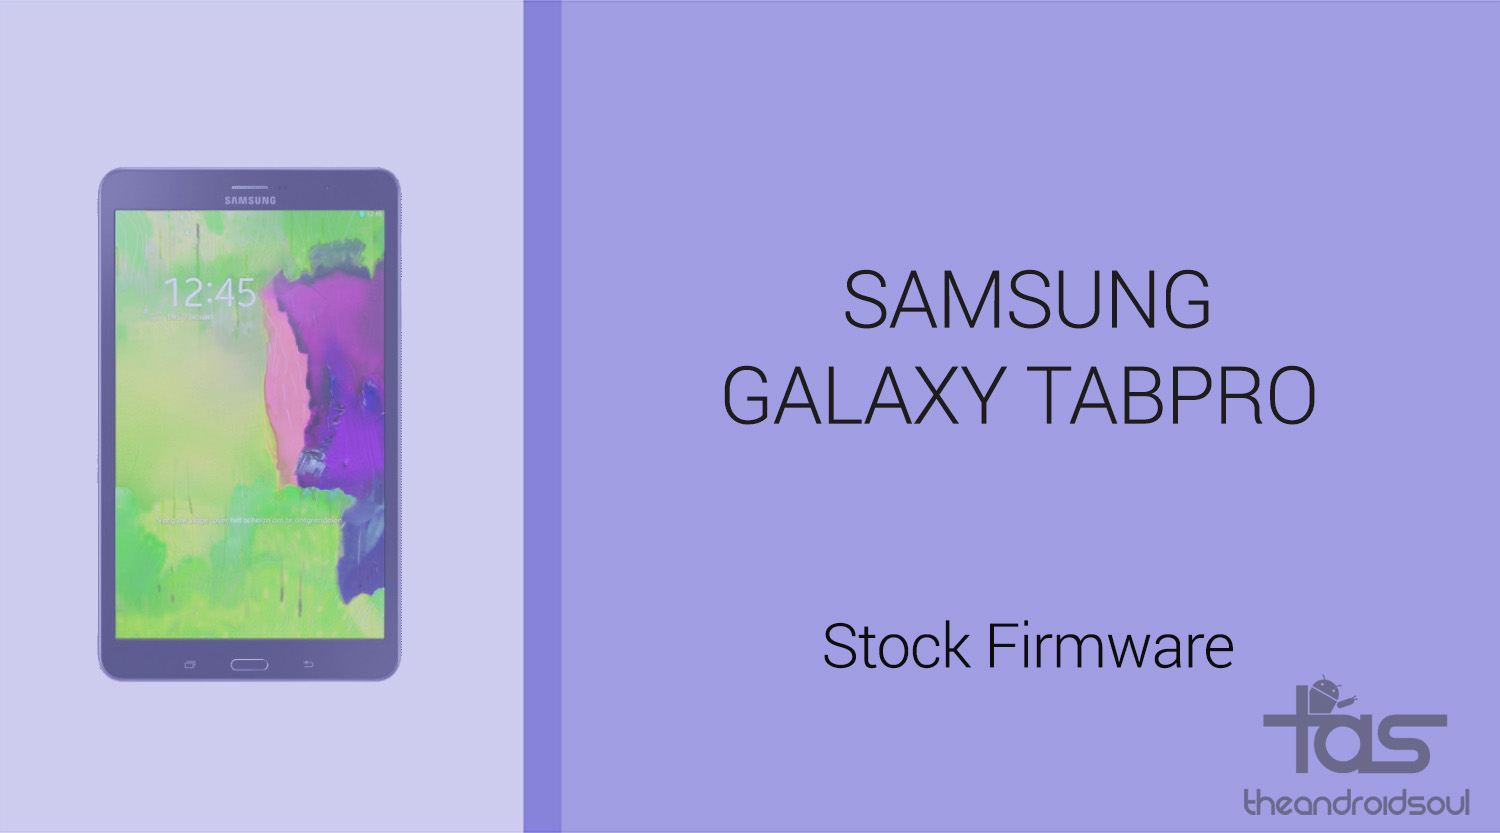 Samsung Firmware – The Android Soul